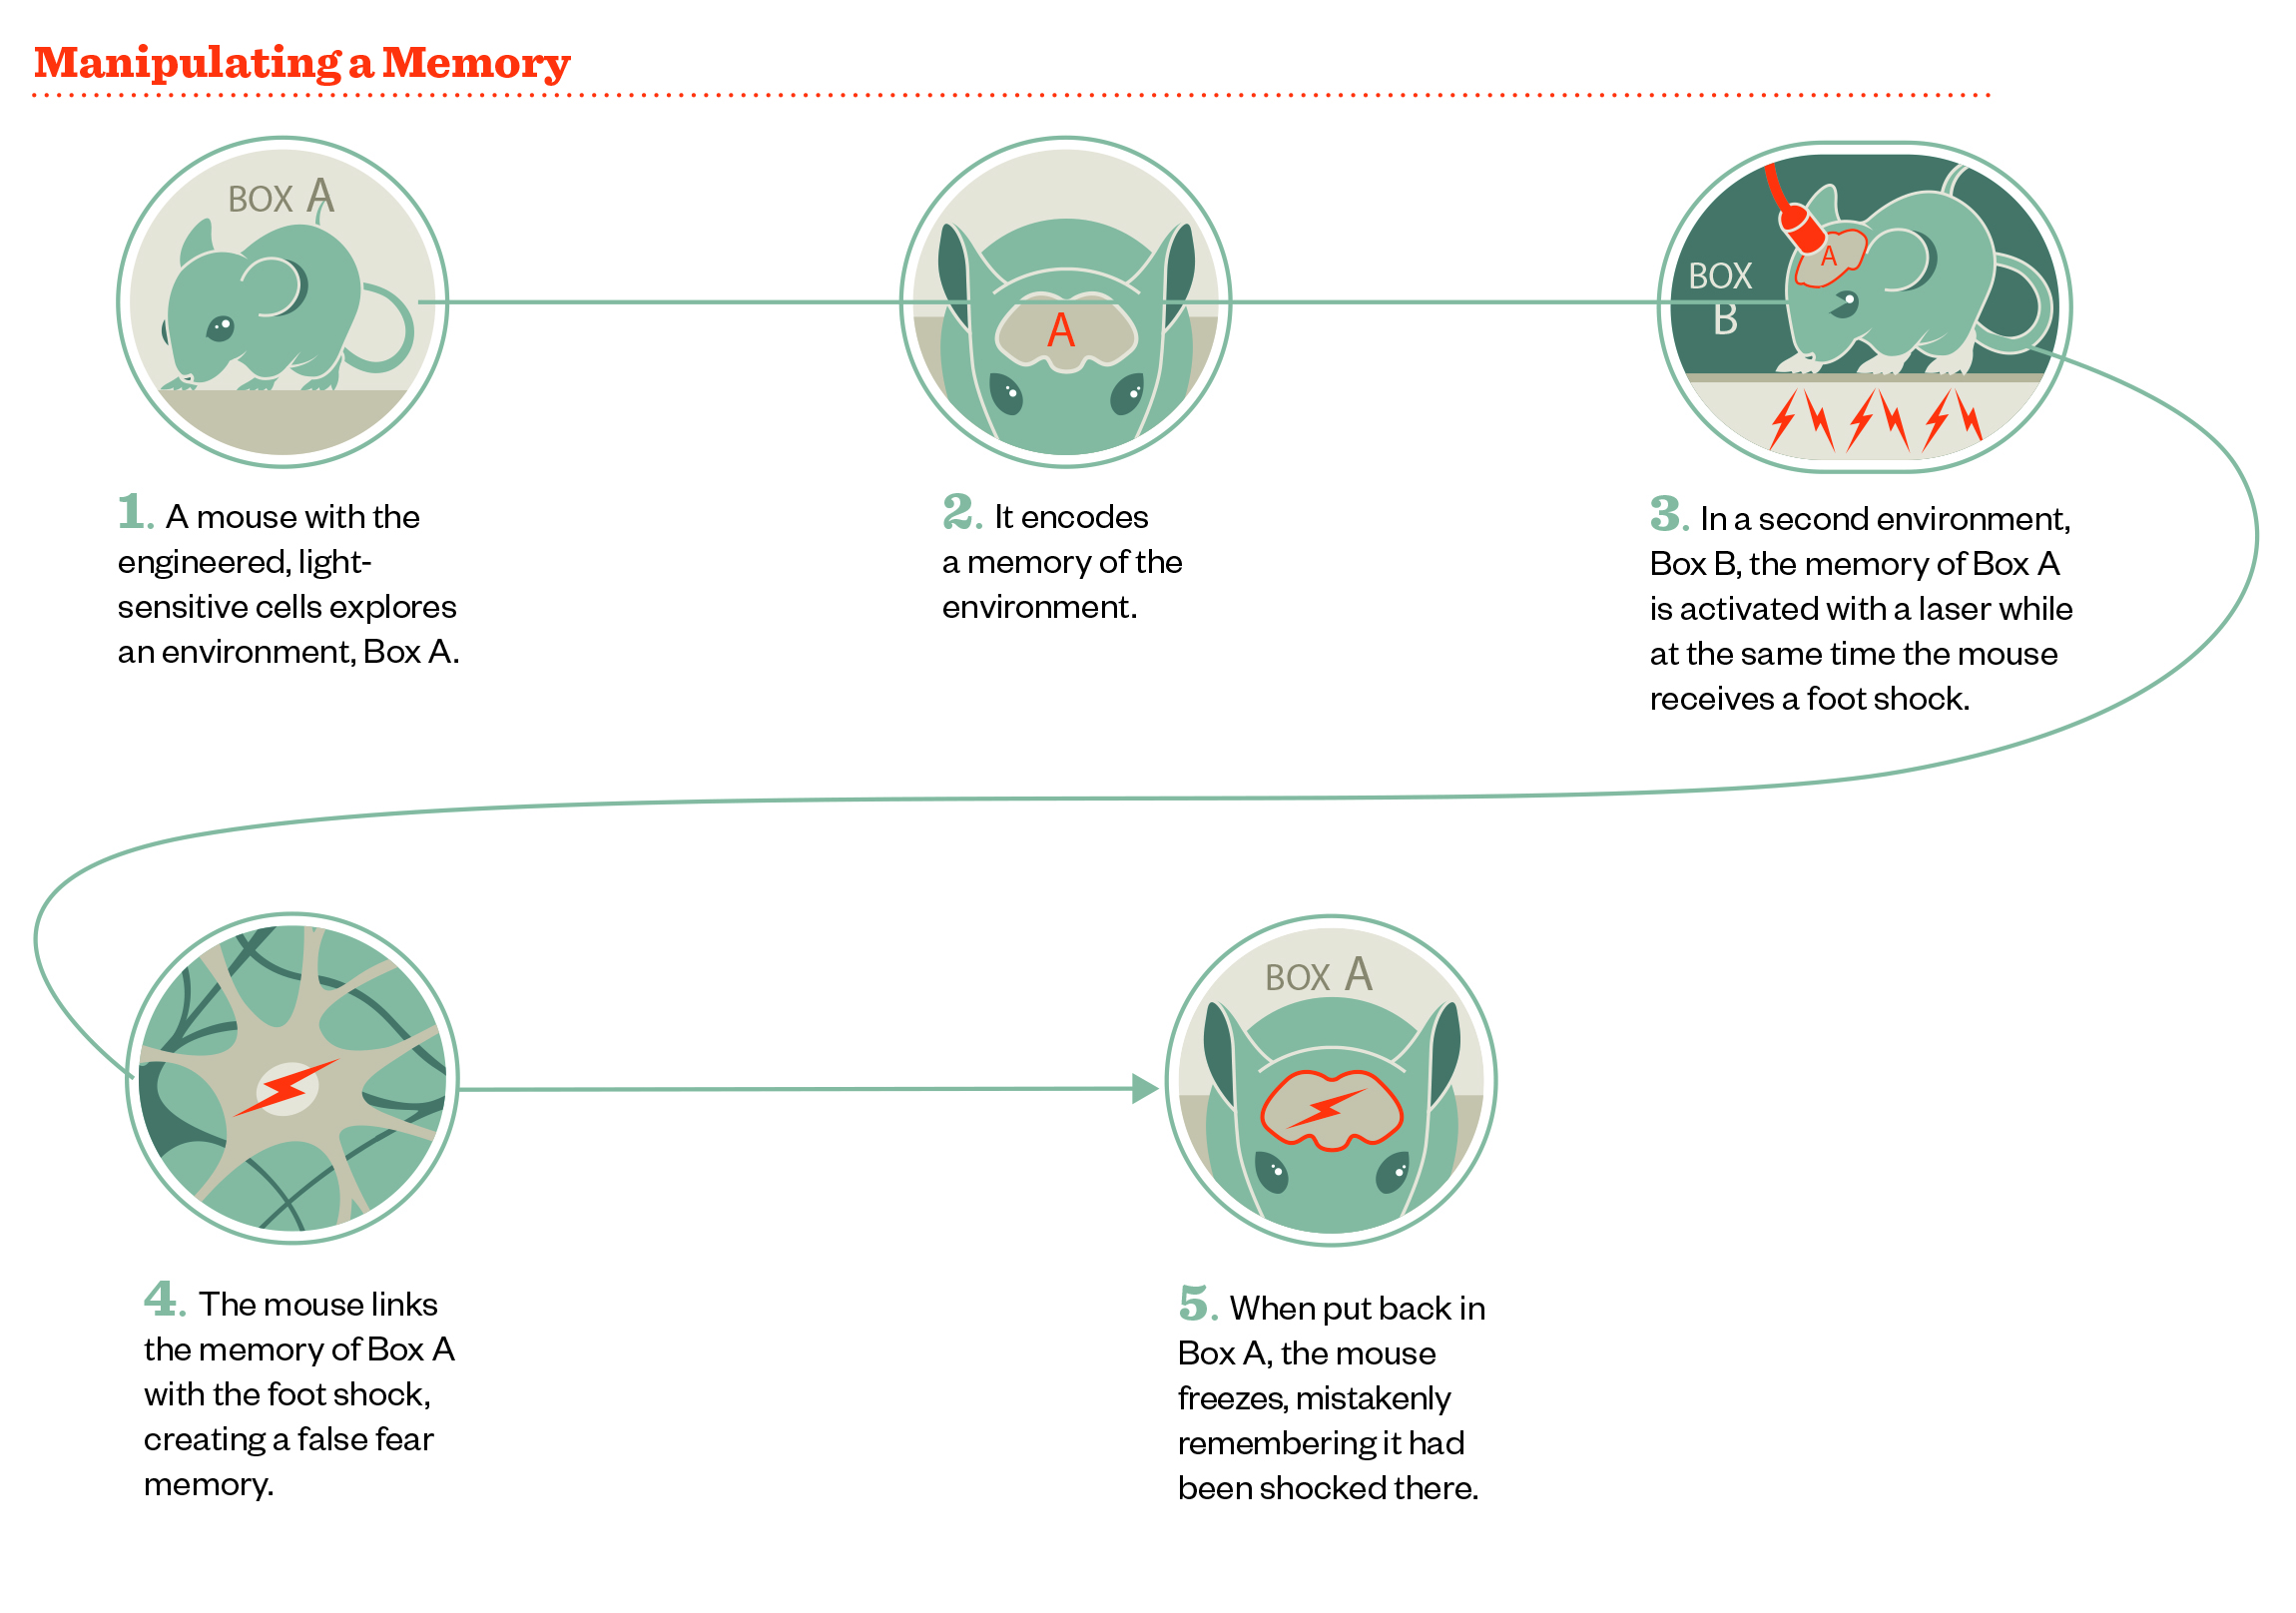 creating false memories Memory distortion and false memory creation in practices that are risky if not dangerous in terms of their potential for creating false beliefs and memories.